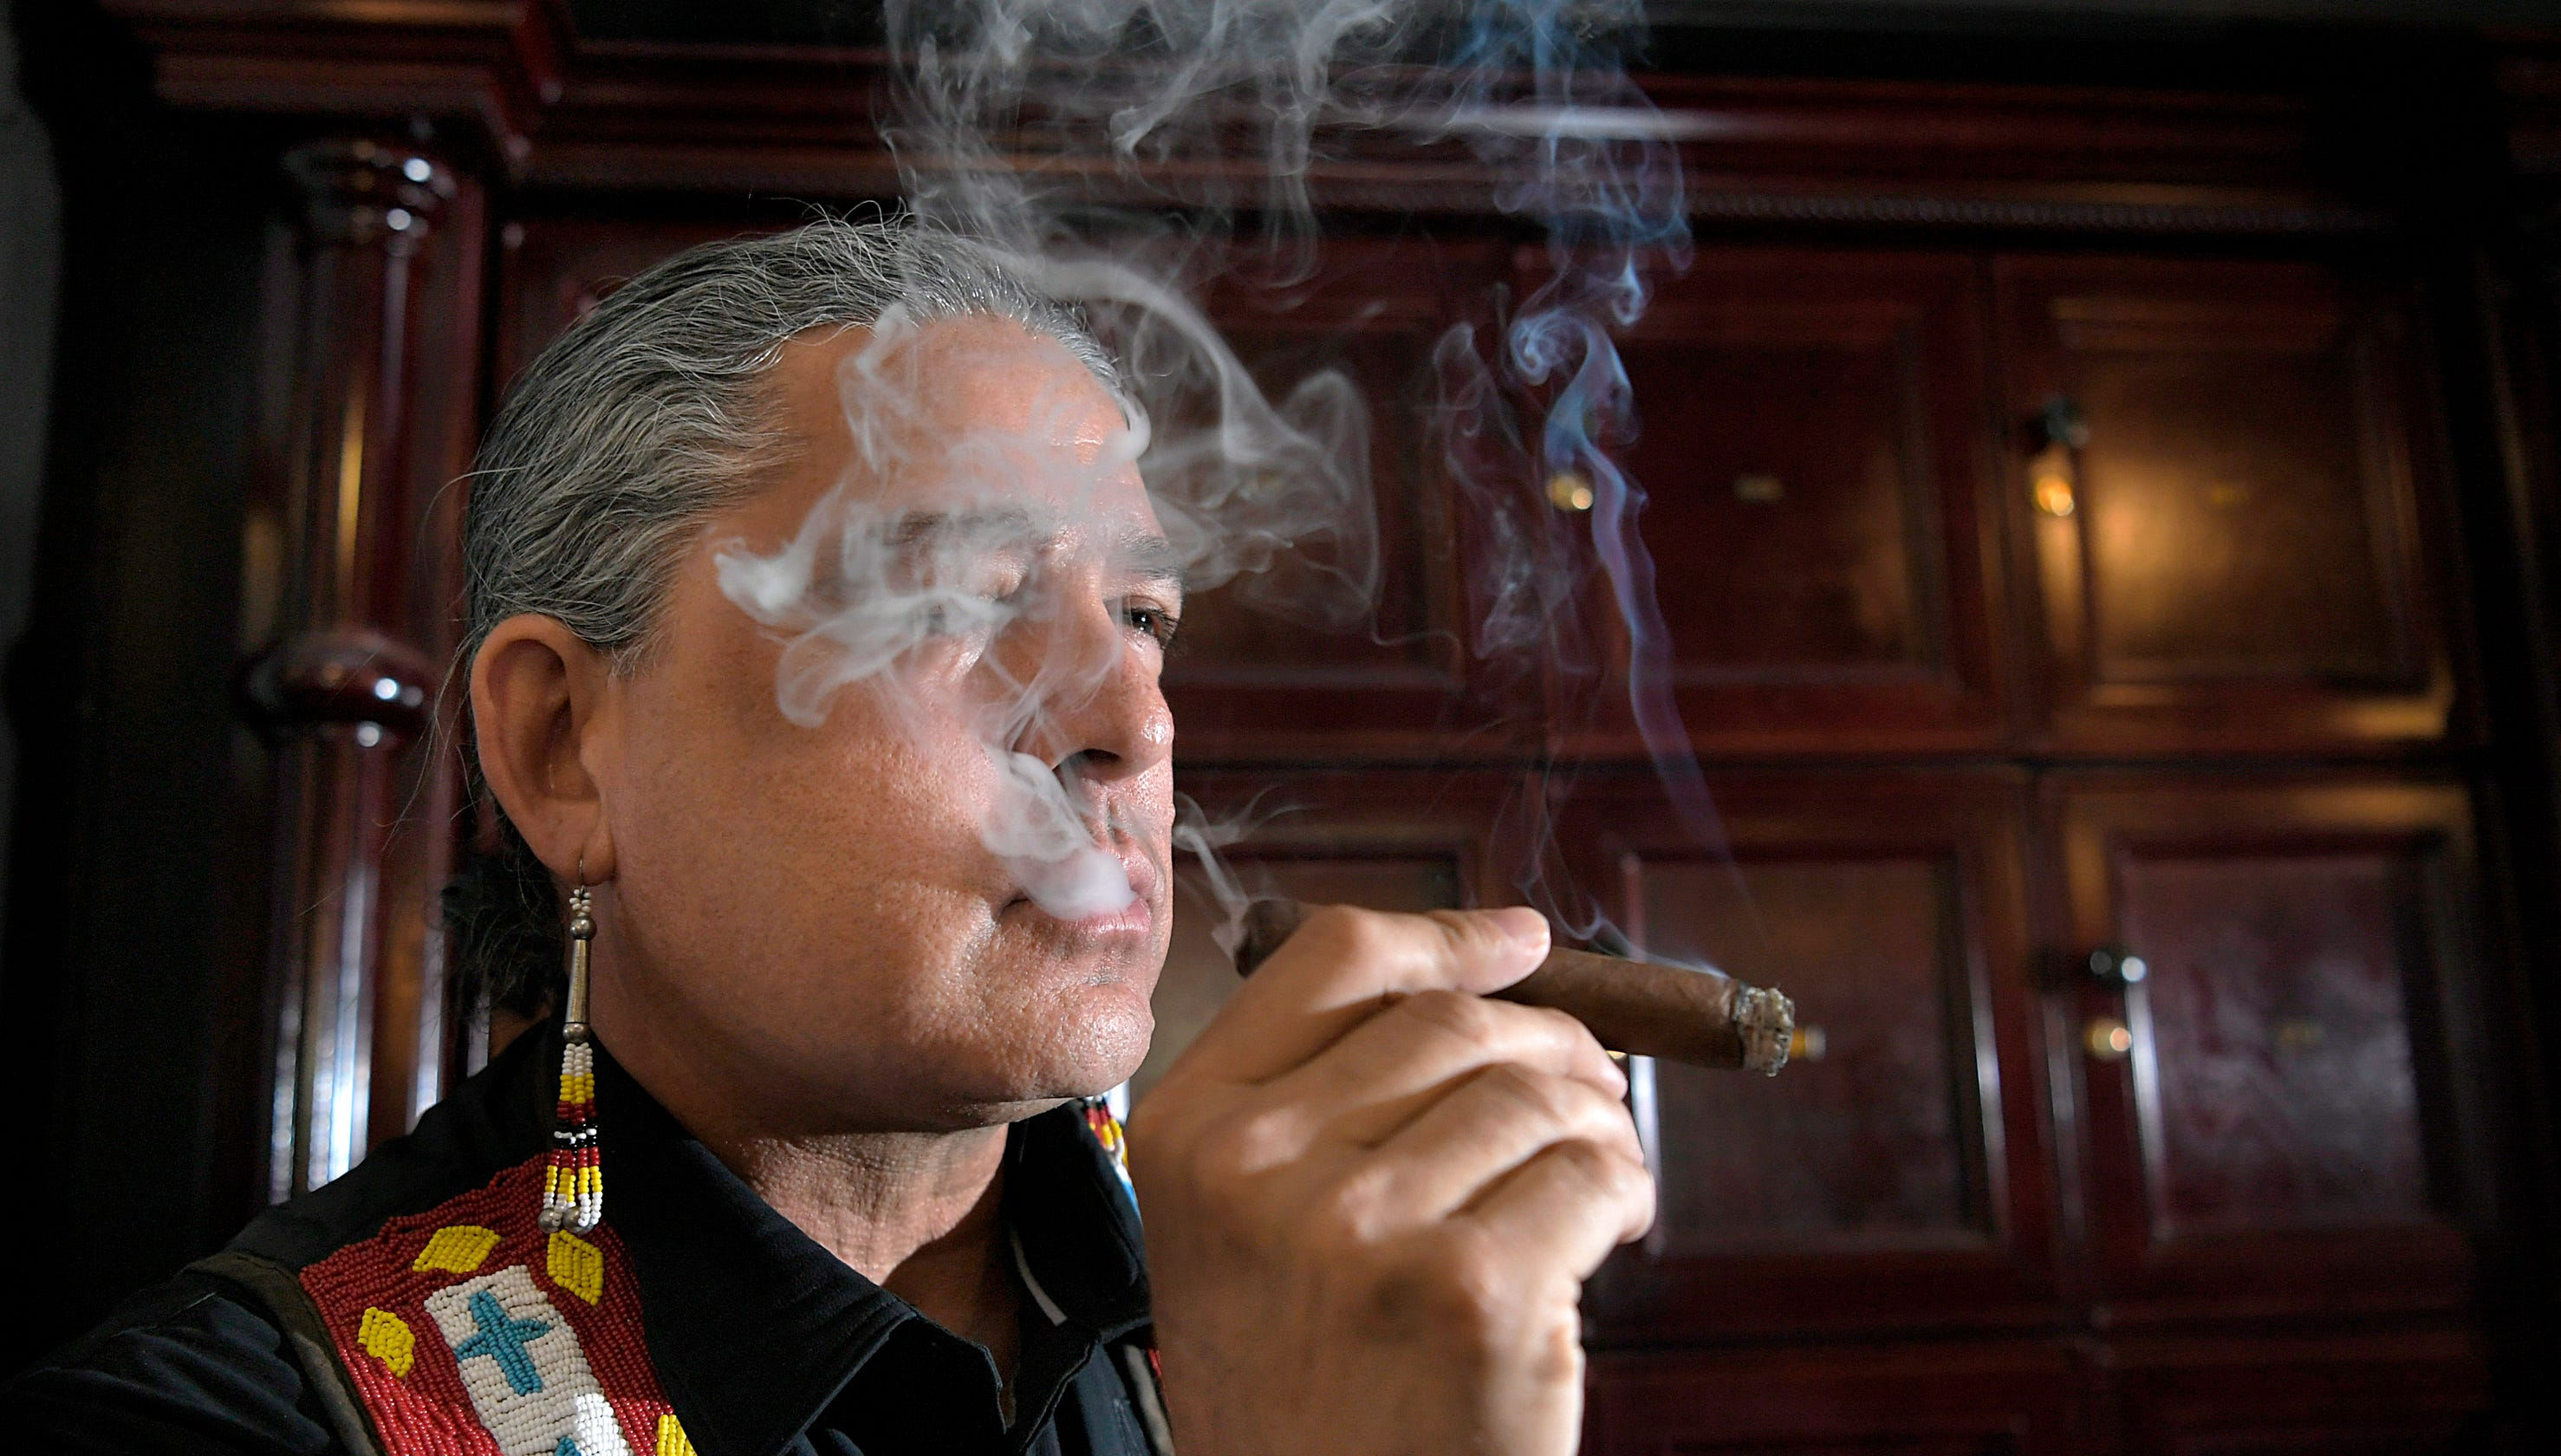 How cigars foster culture, build community in Williamson County